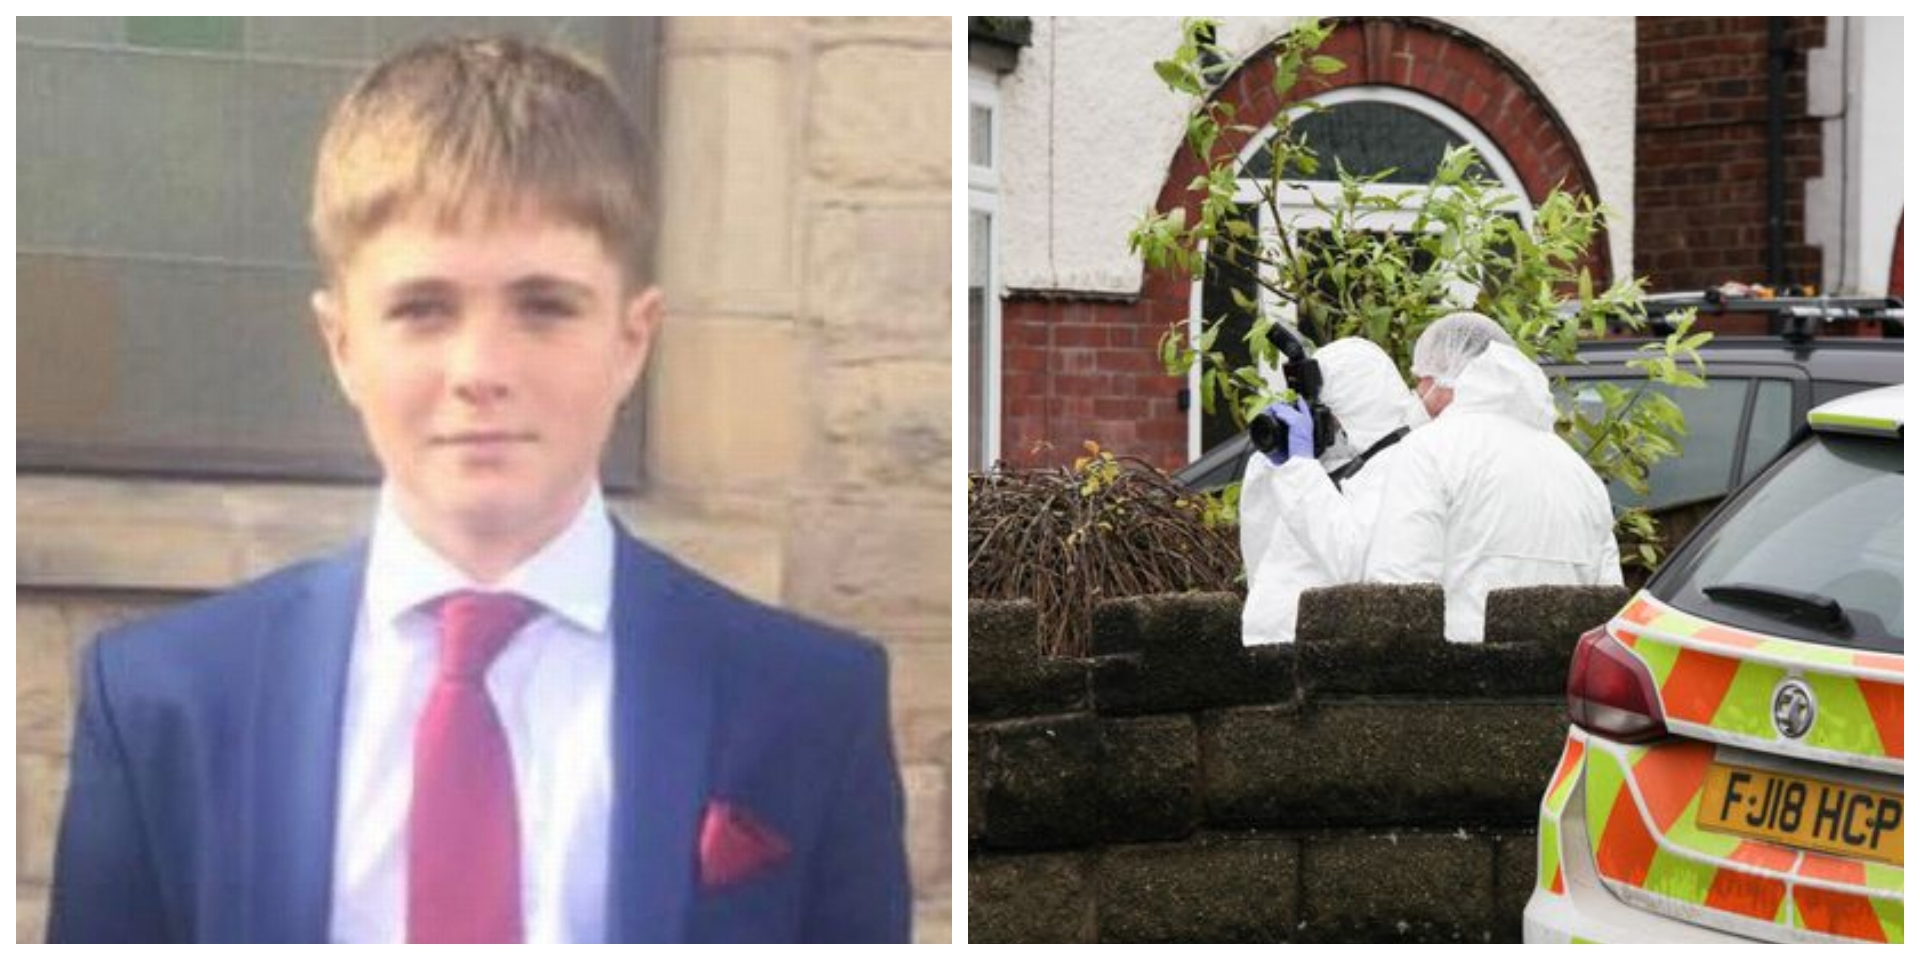 Heartbroken mum of boy, 16, stabbed to death on Boxing Day remembers 'wonderful' son